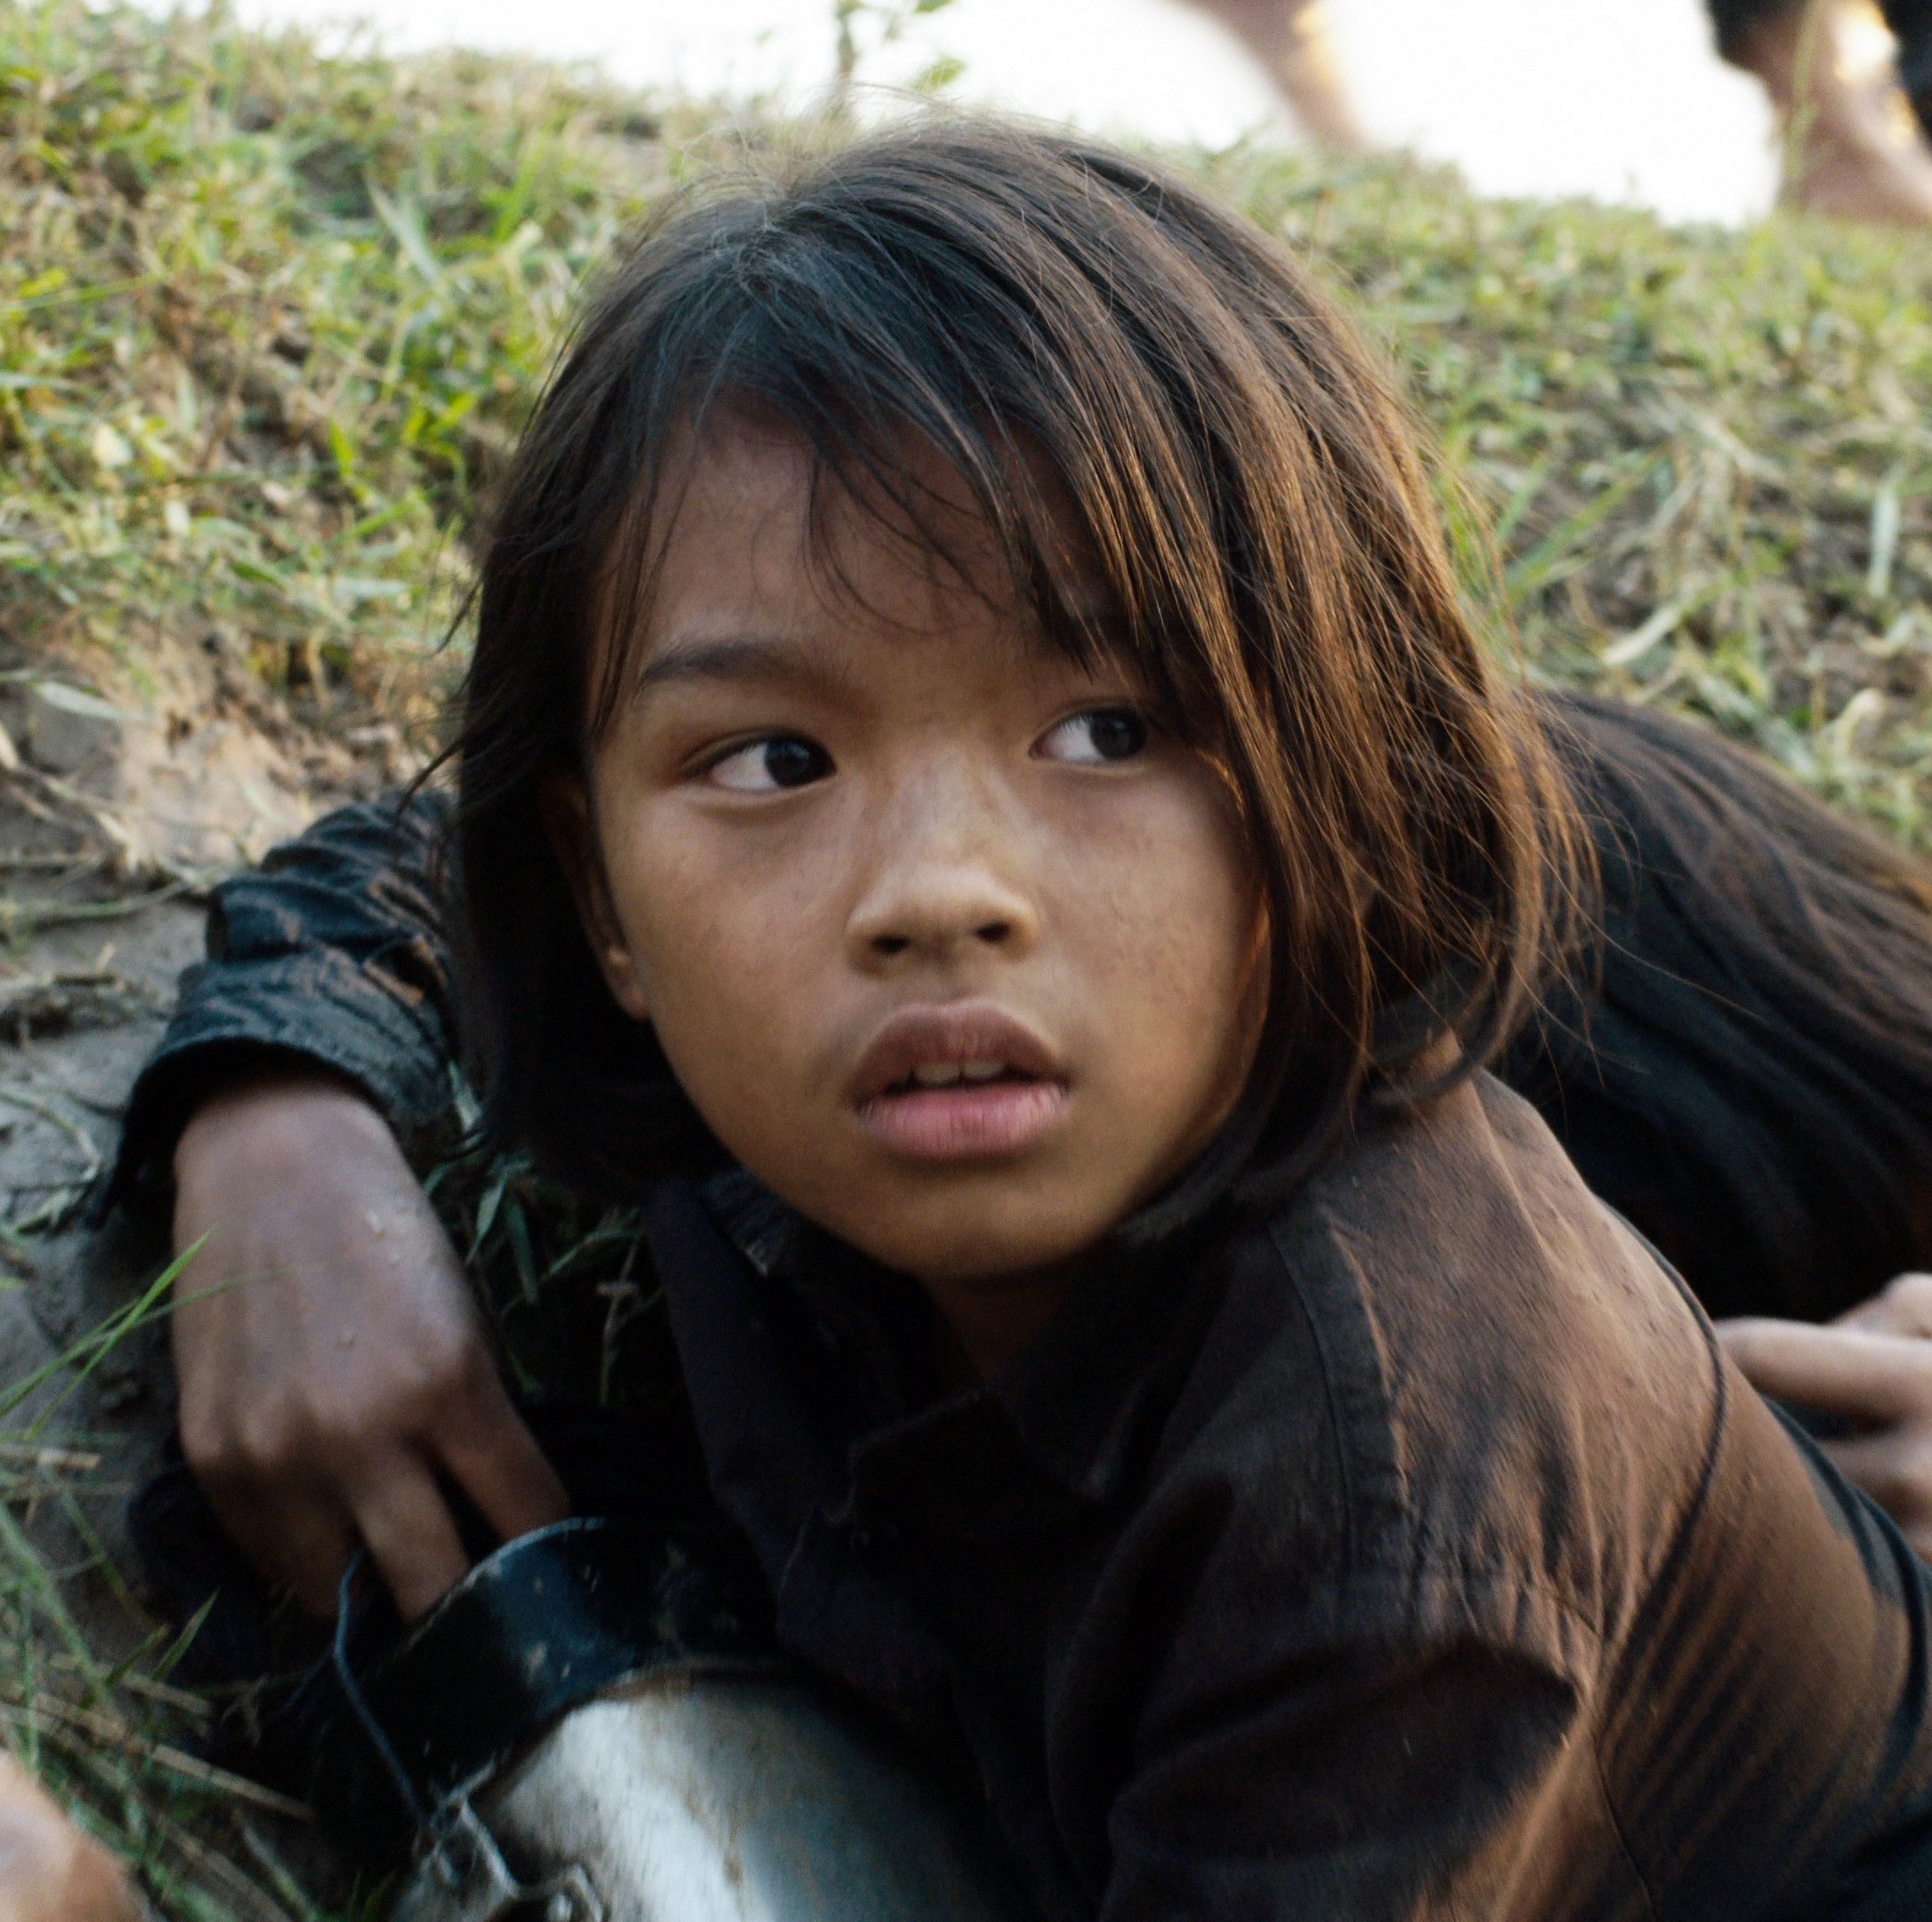 First They Killed My Father Angelina Jolie directed this drama, based on the true story of Cambodian human rights activist Loung Ung's childhood experience living under Khmer Rouge rule in the 1970s, during which her family was forced into a labor camp by the Communist regime.